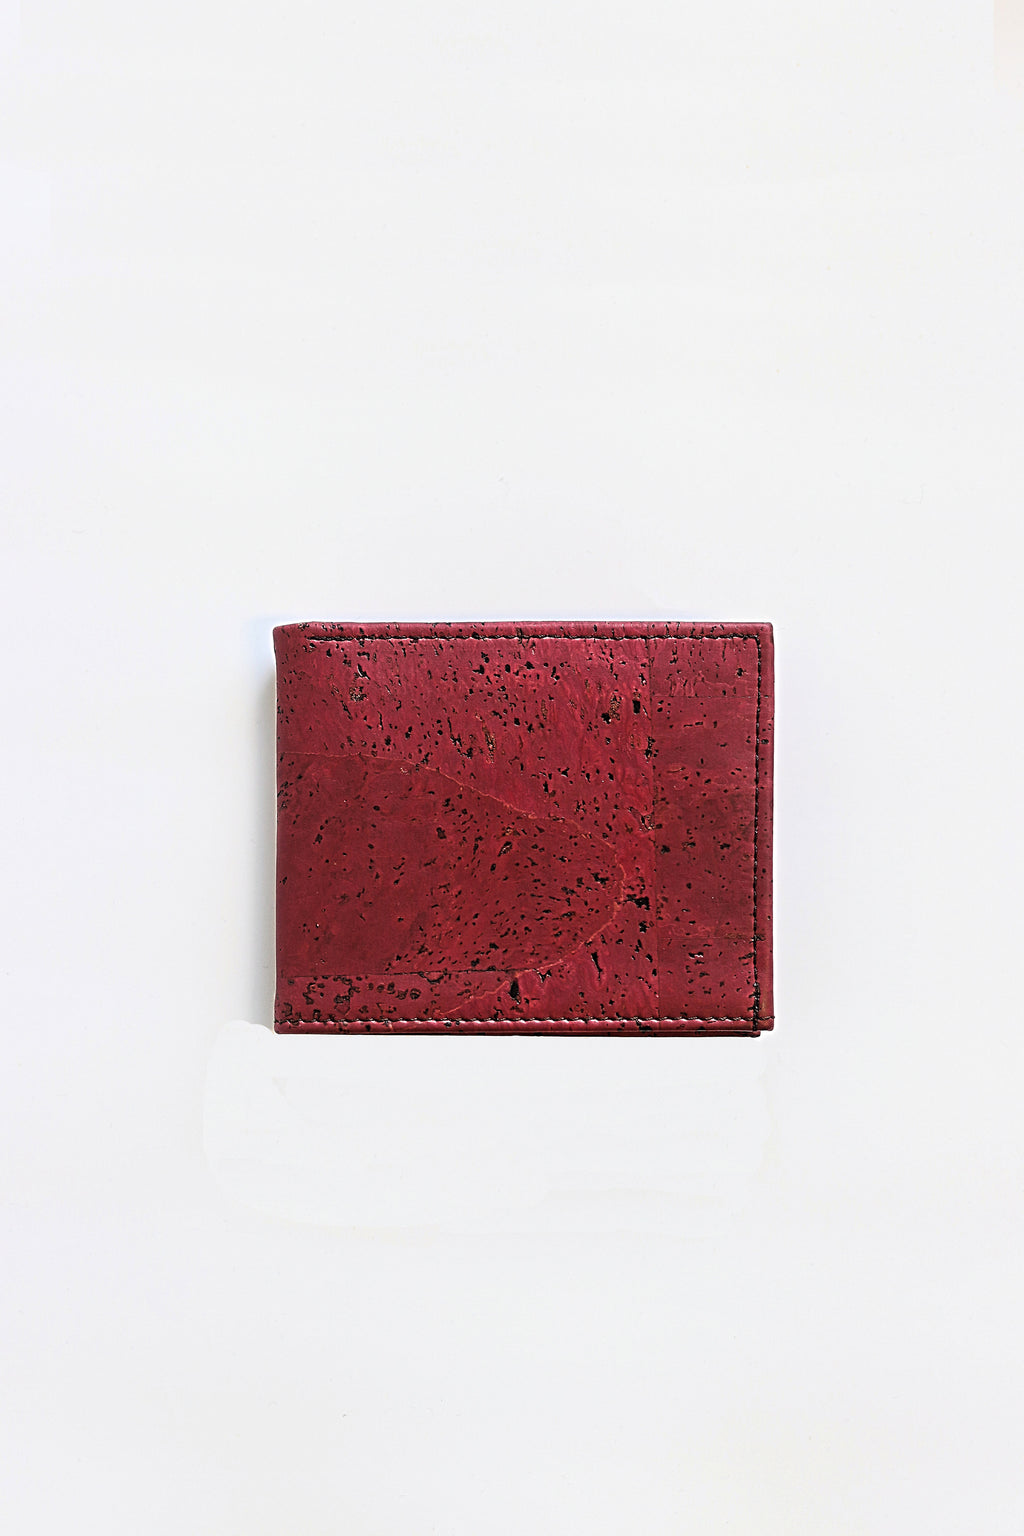 Forester Products red, sustainable, cork, vegan leather bifold wallet closed front view.